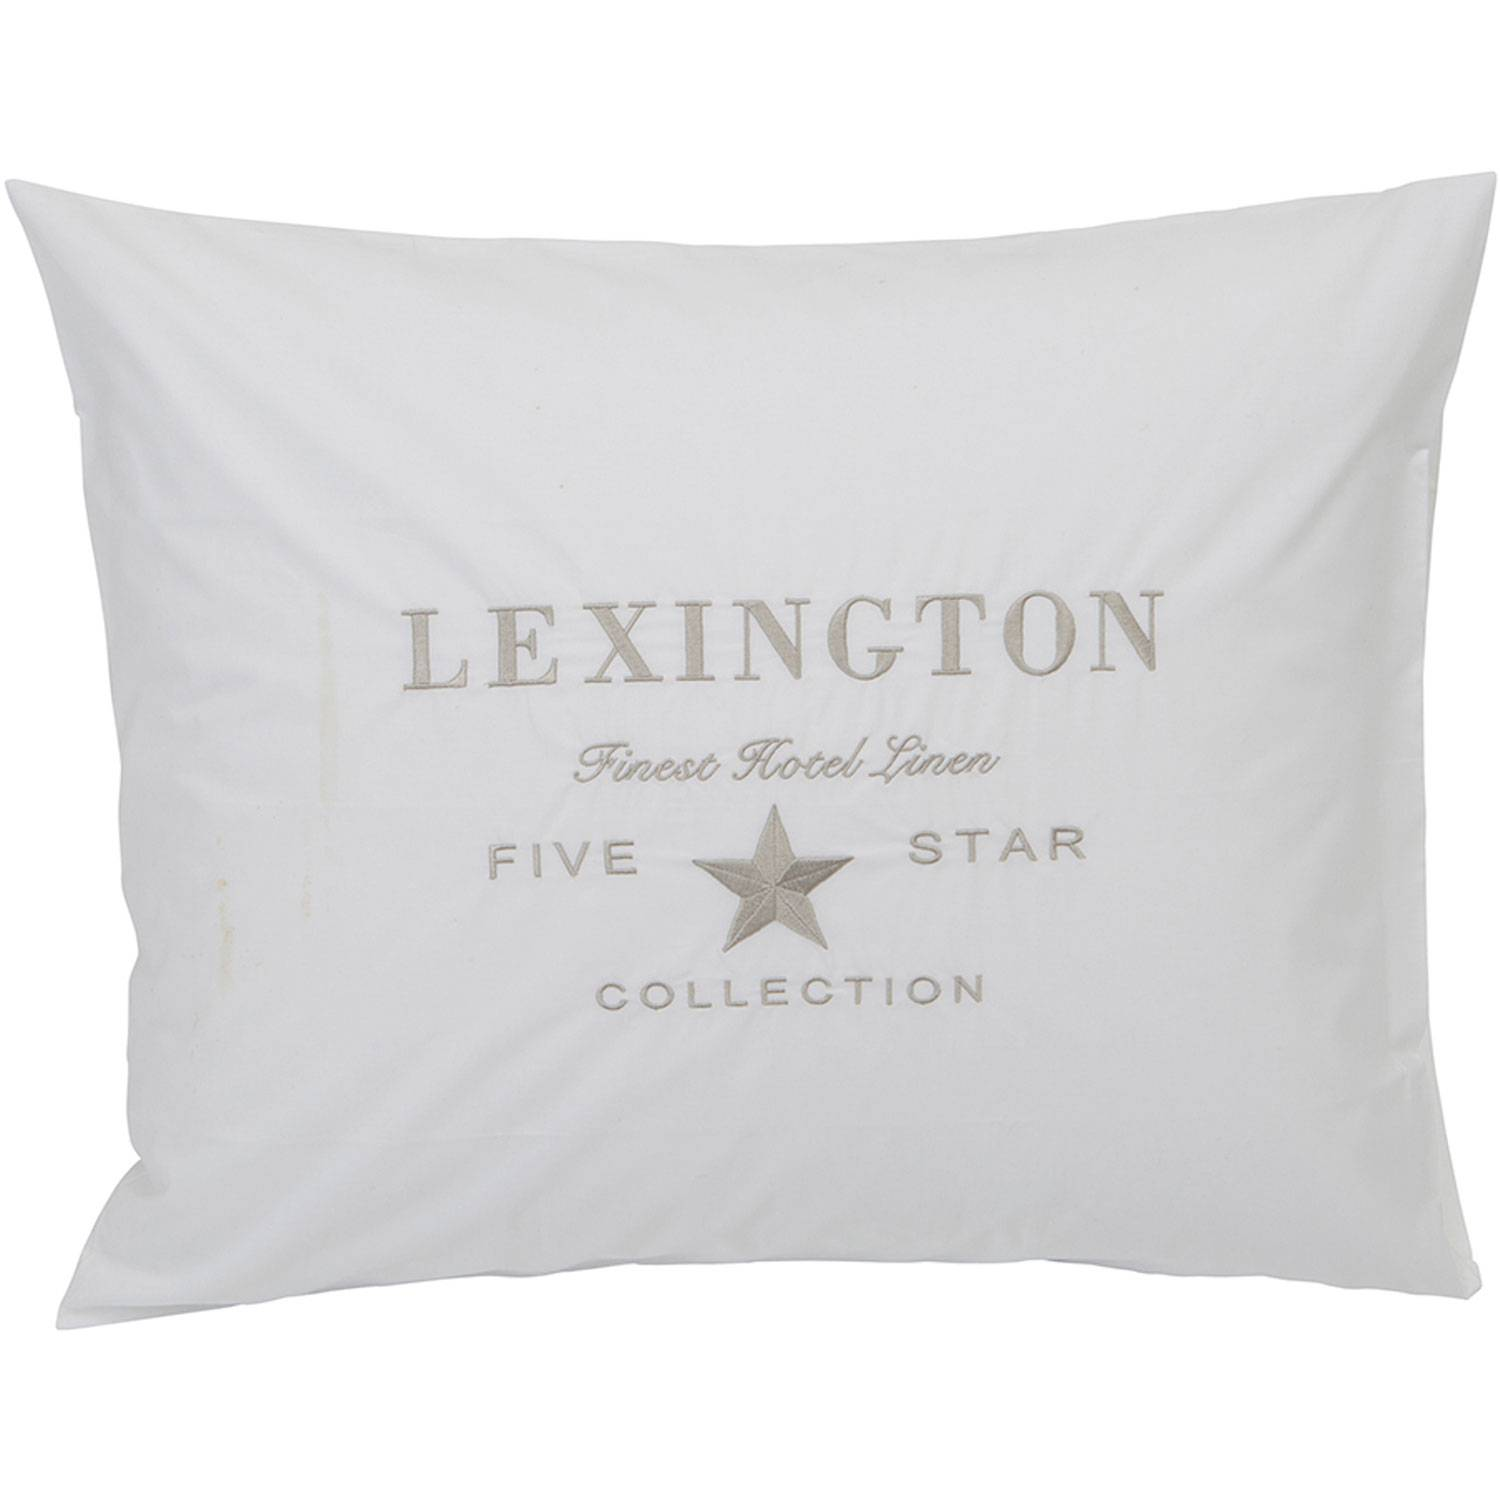 Lexington Hotel Embroidery Pillowcase 65x65 cm, White/Beige